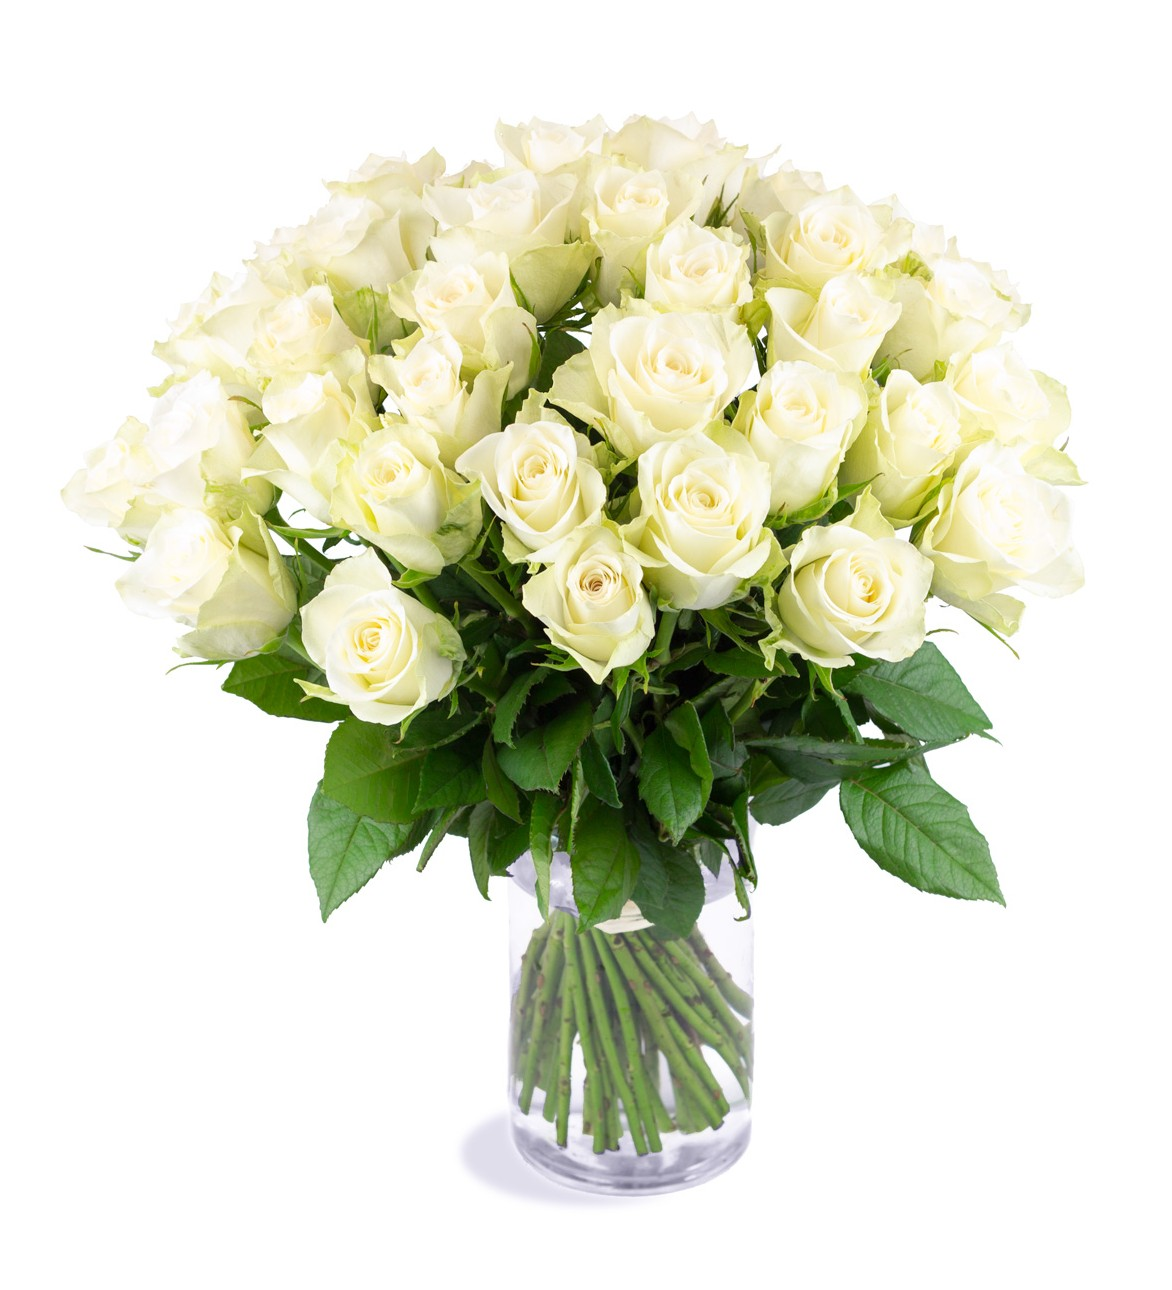 Roses blanches villa florale for Bouquet de roses blanches